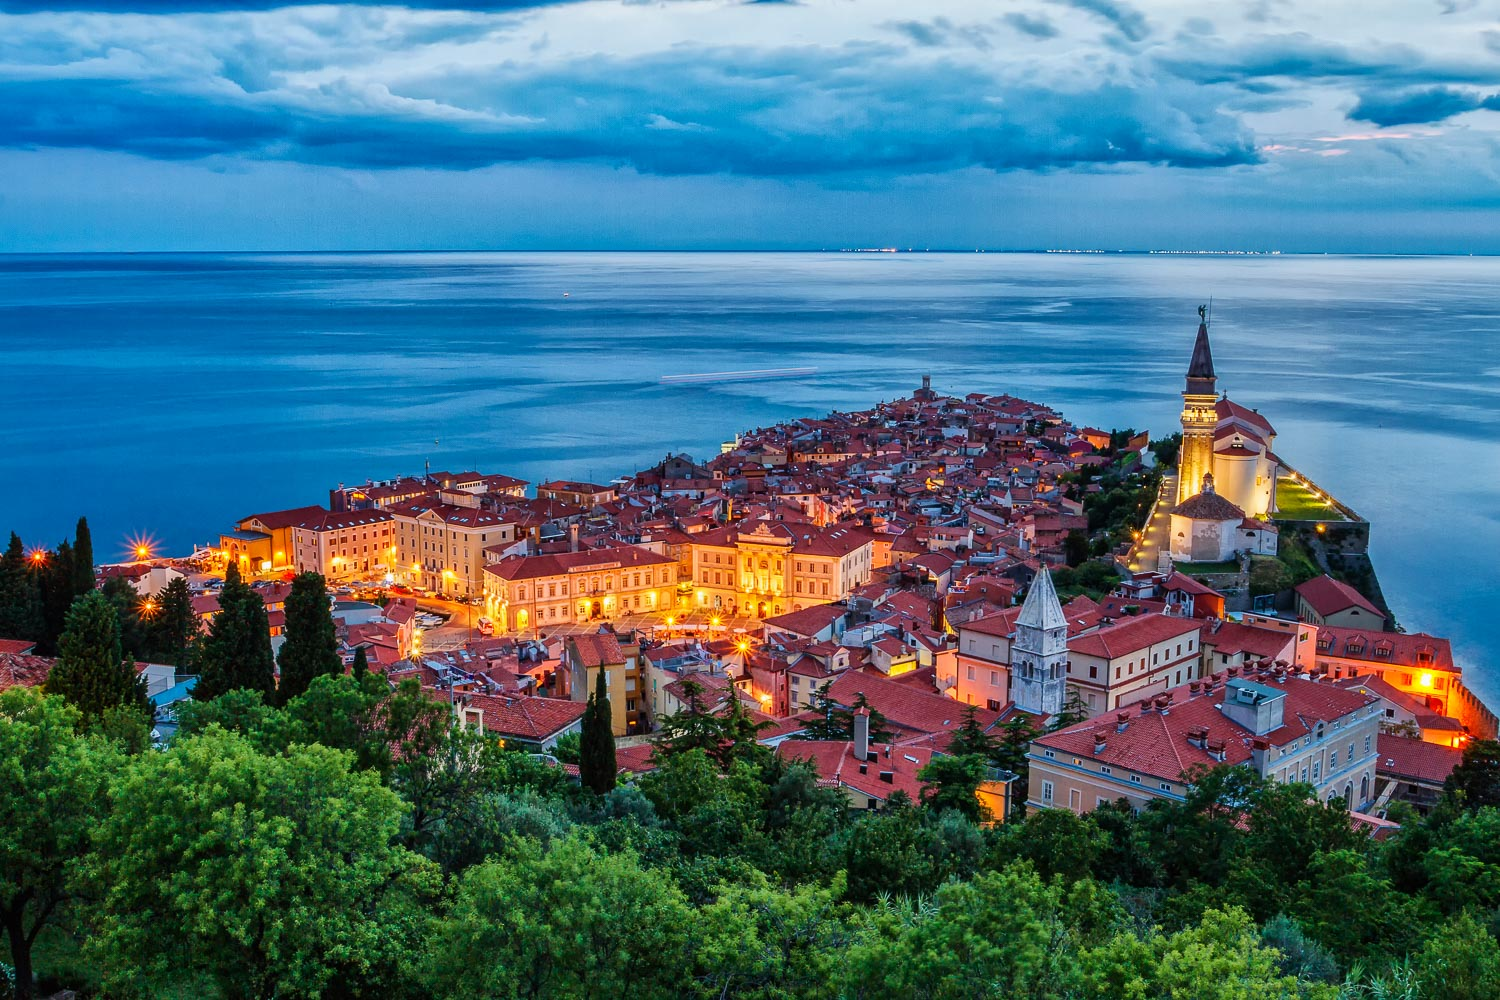 The town of Piran illuminated with street lights, surrounded with heavy clouds and deep blue Adriatic sea, Venice in the background.